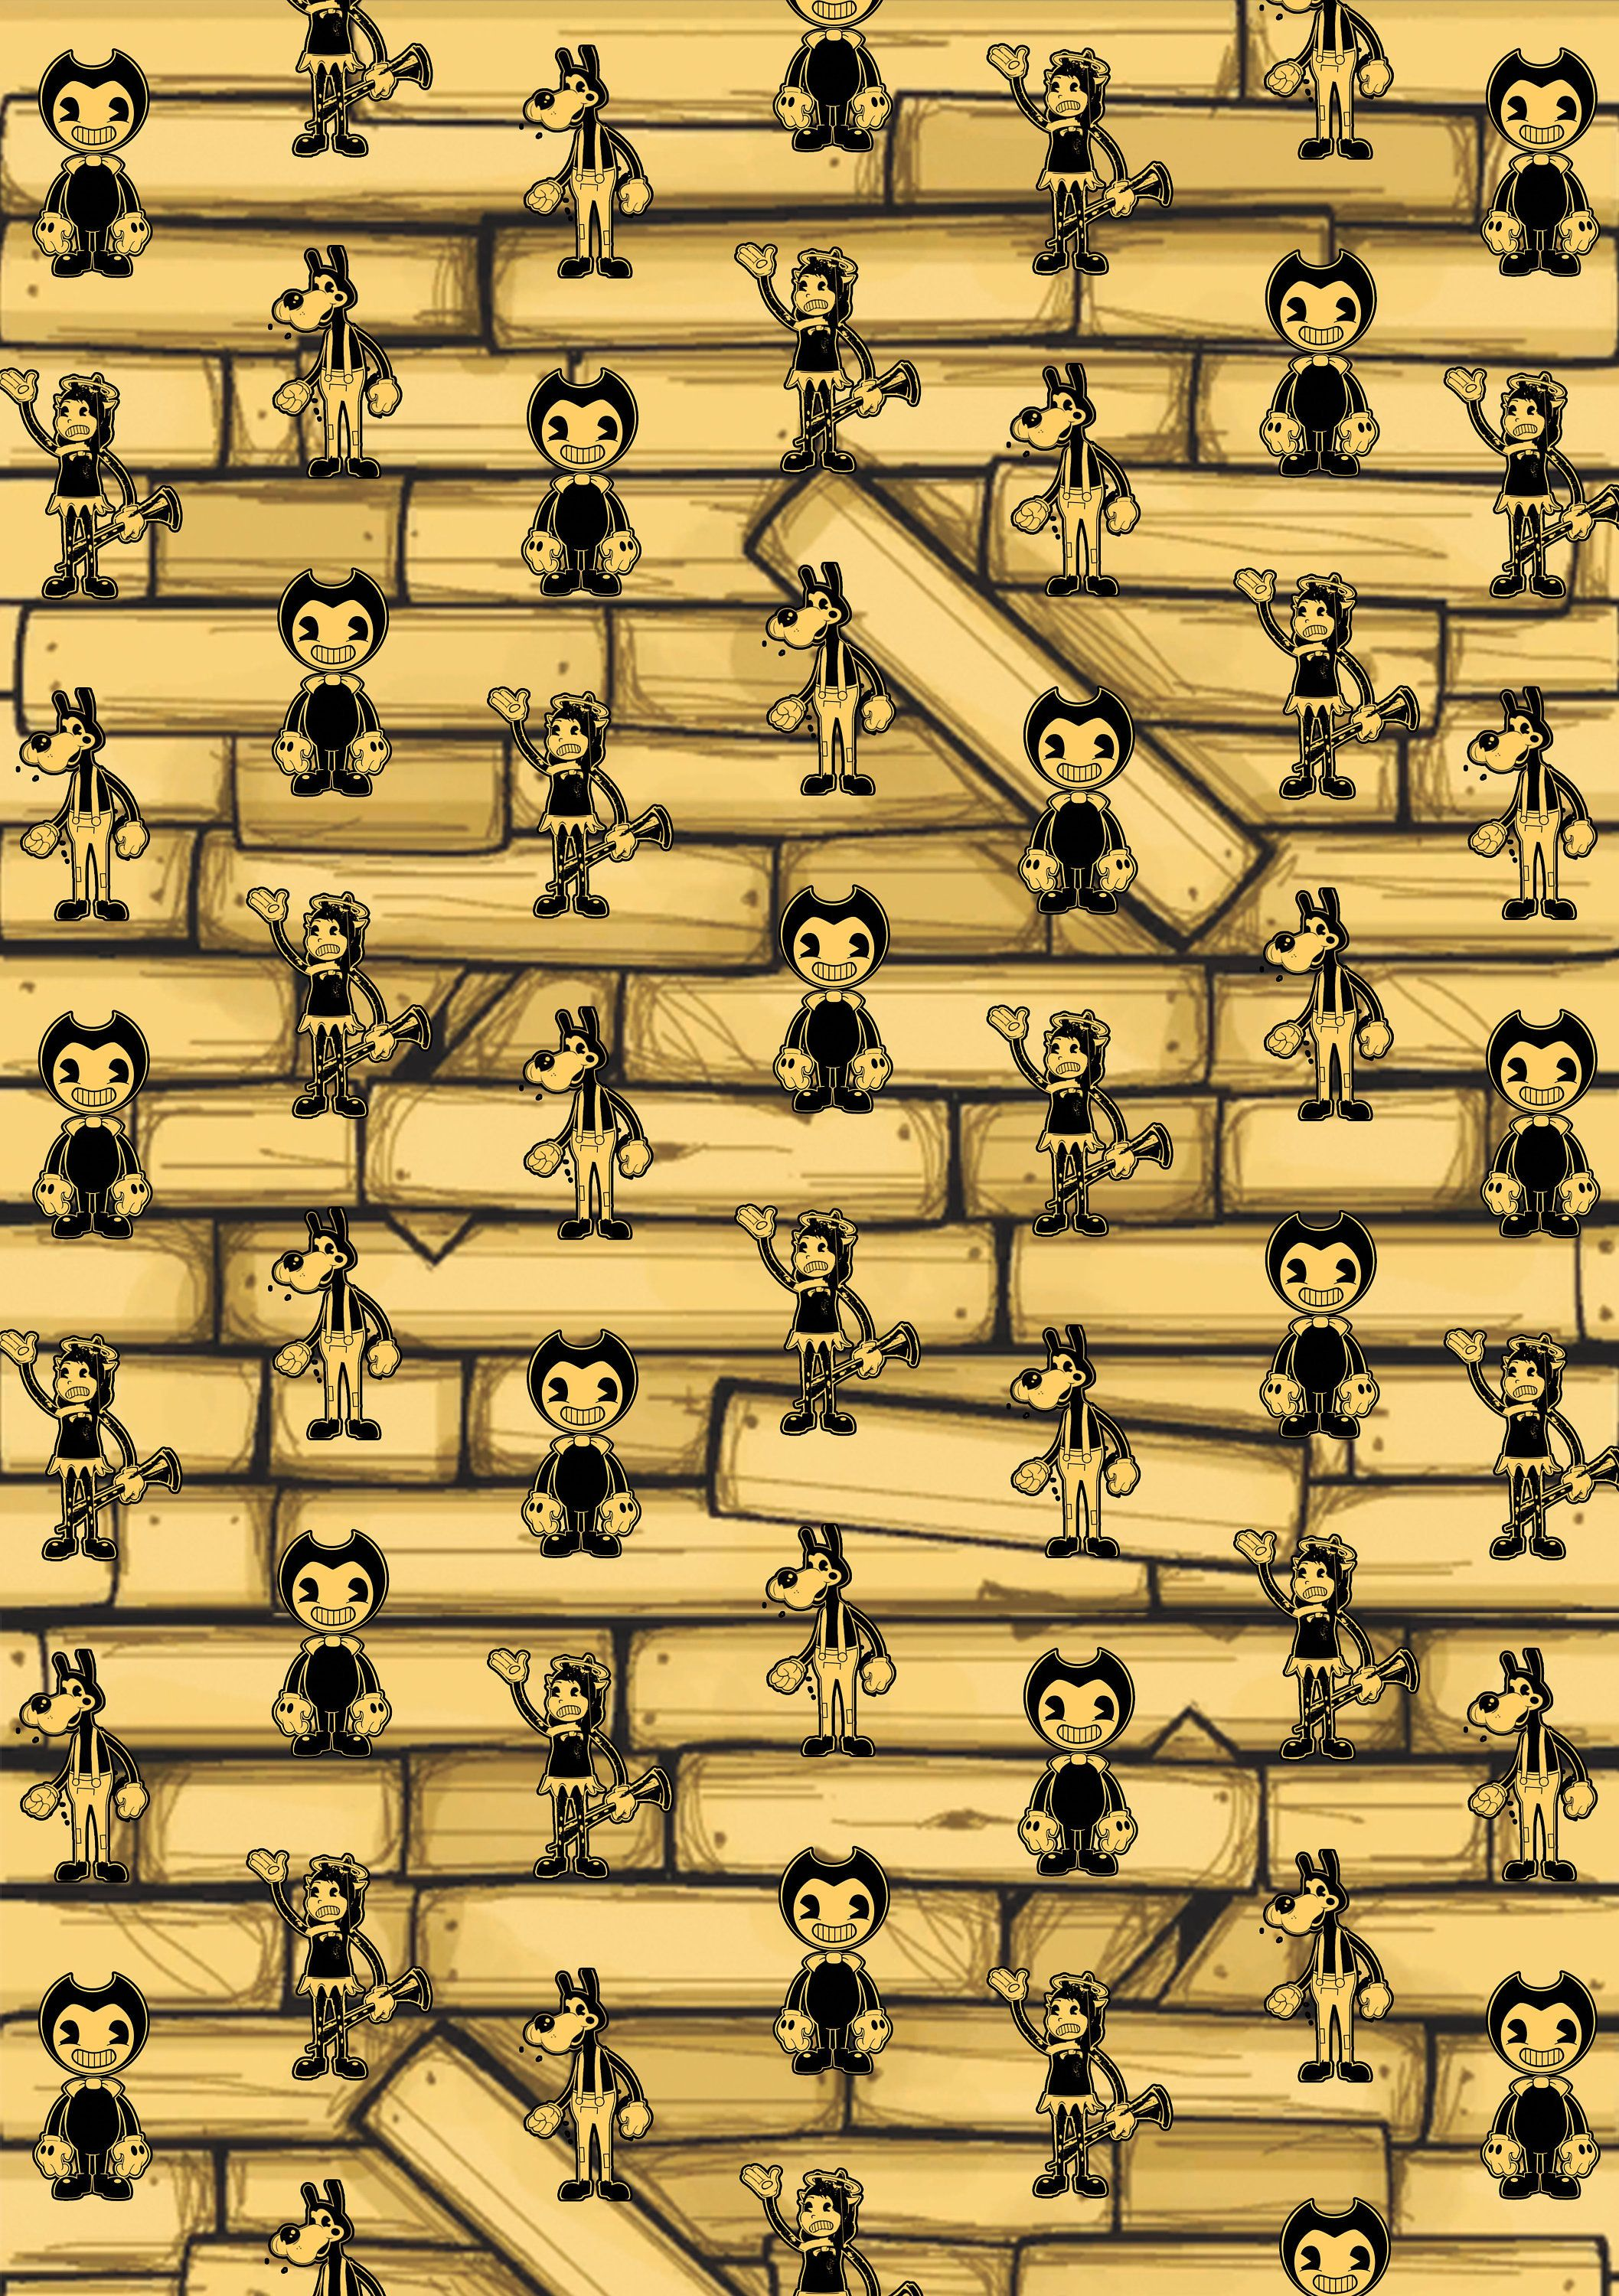 bendy and the ink machine free download for windows 7